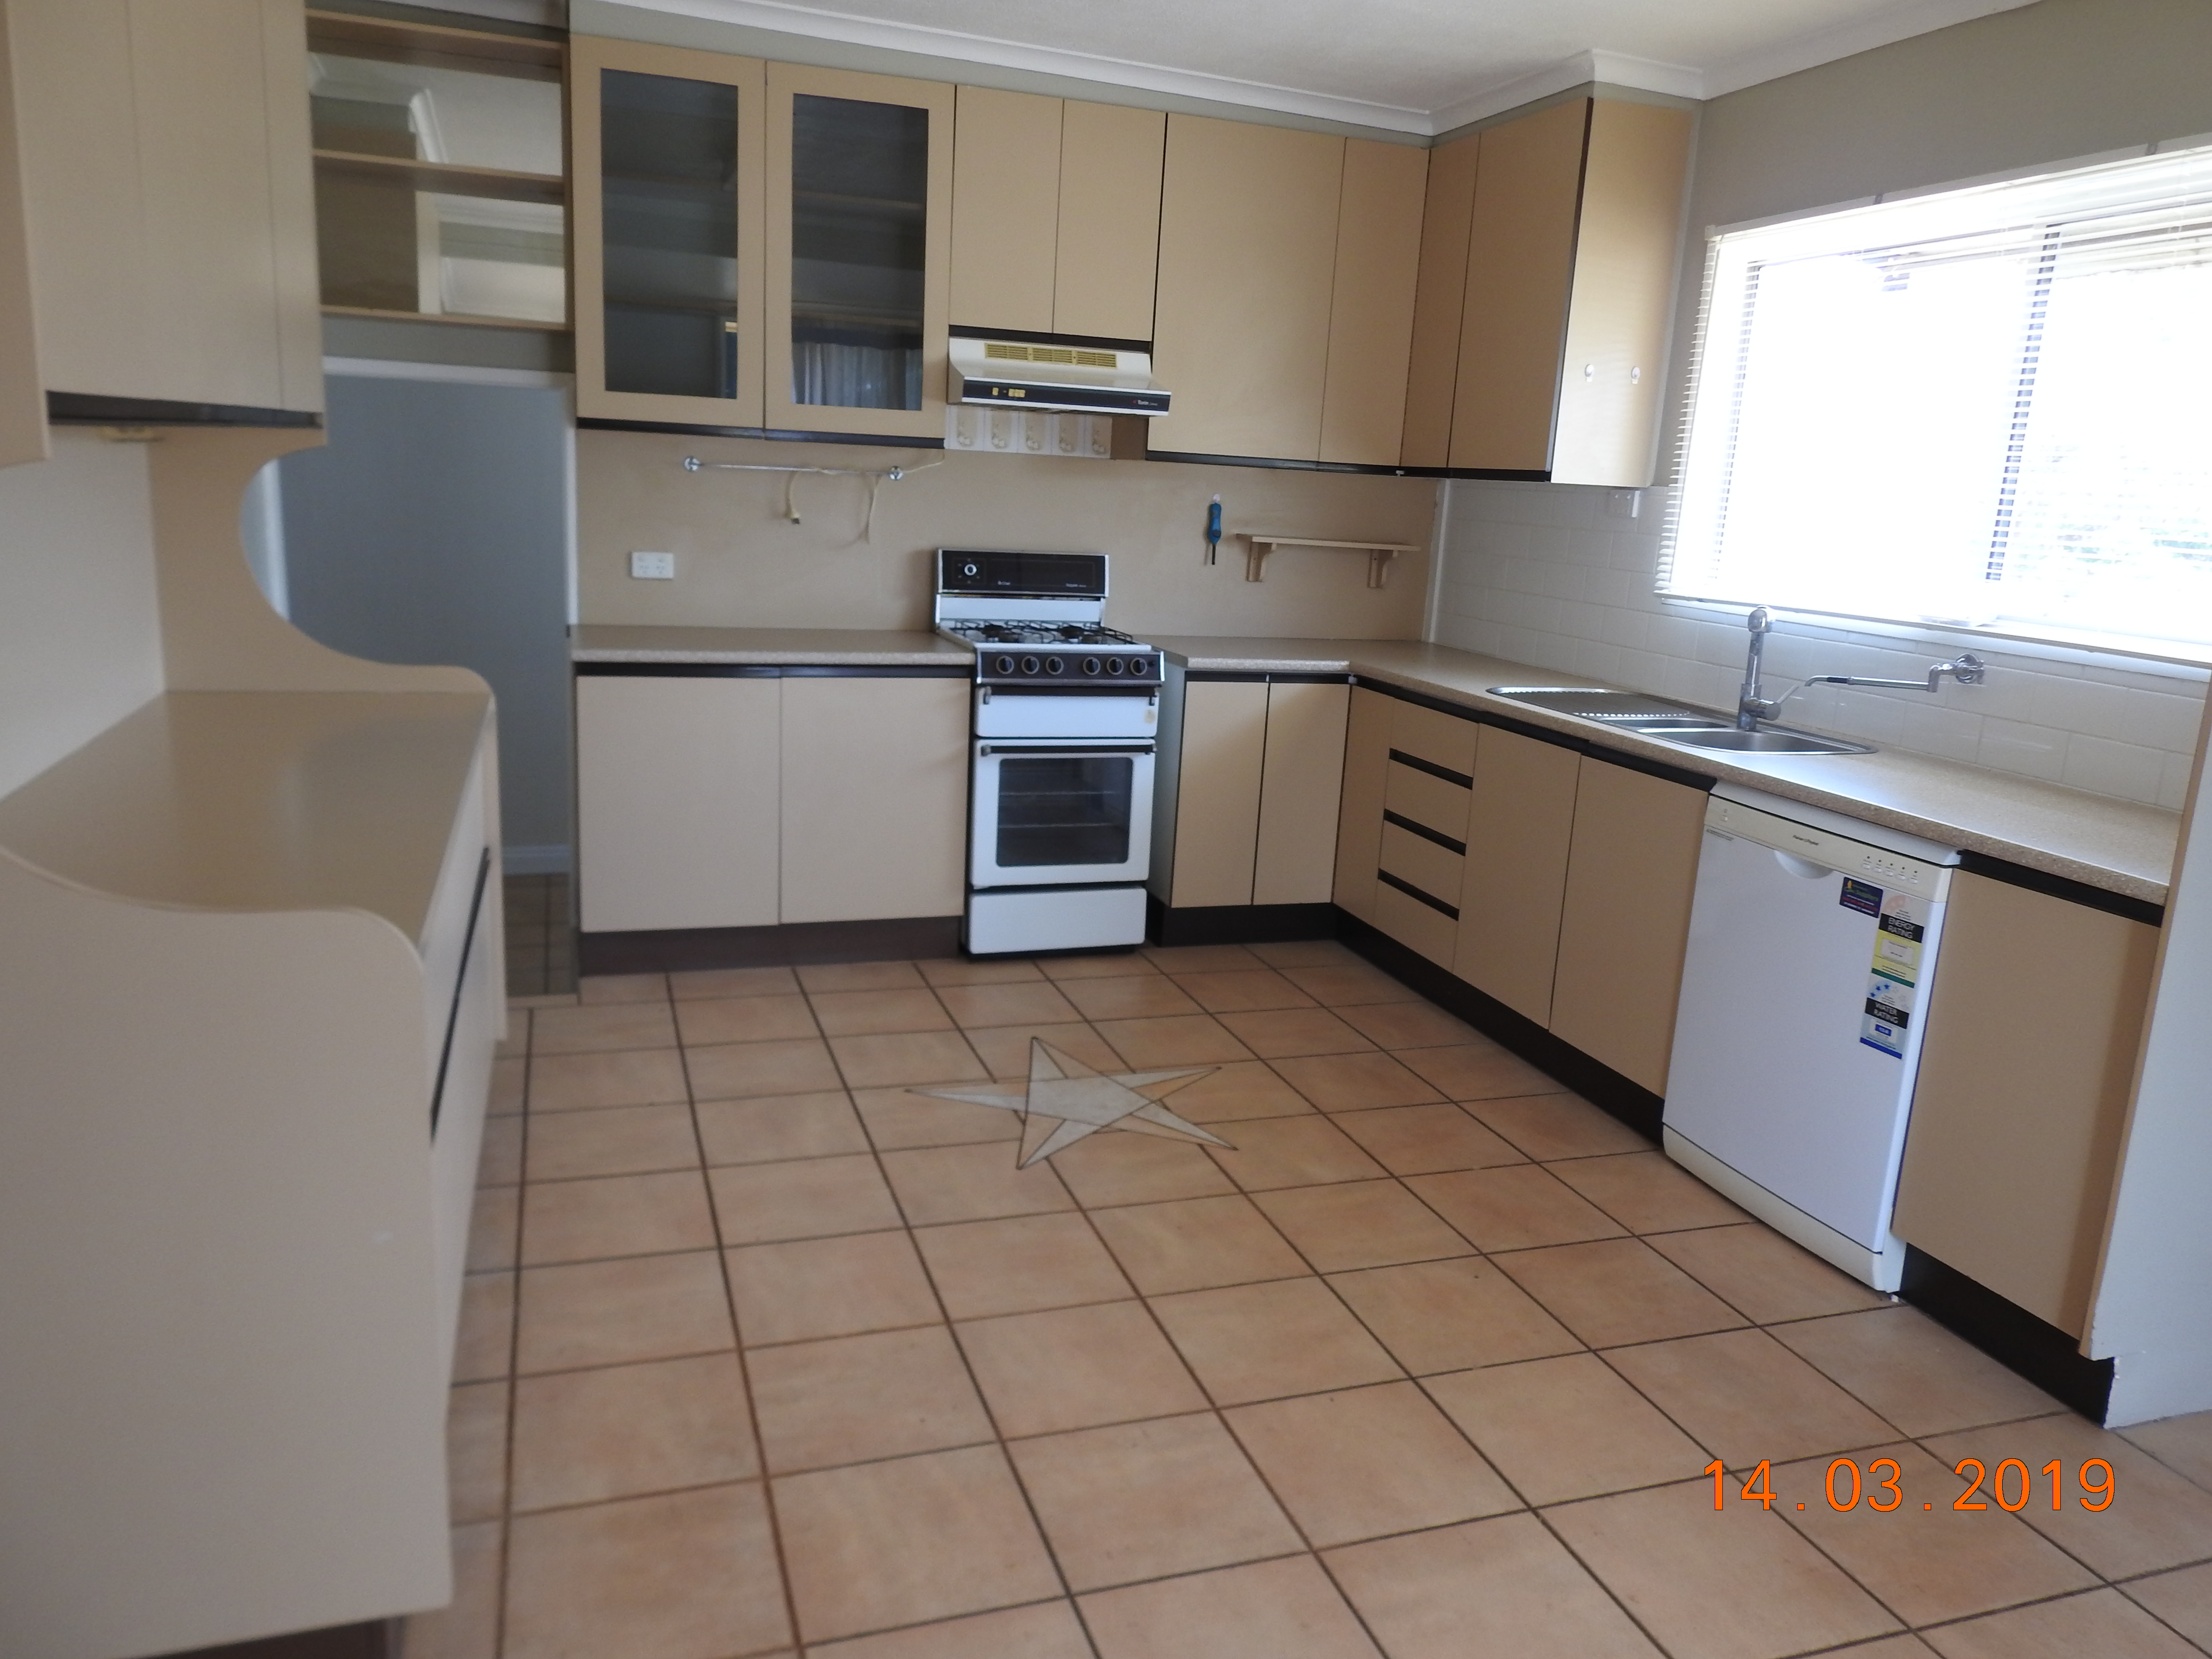 PRIVATE, RENOVATED & CLOSE TO ALL AMENITIES